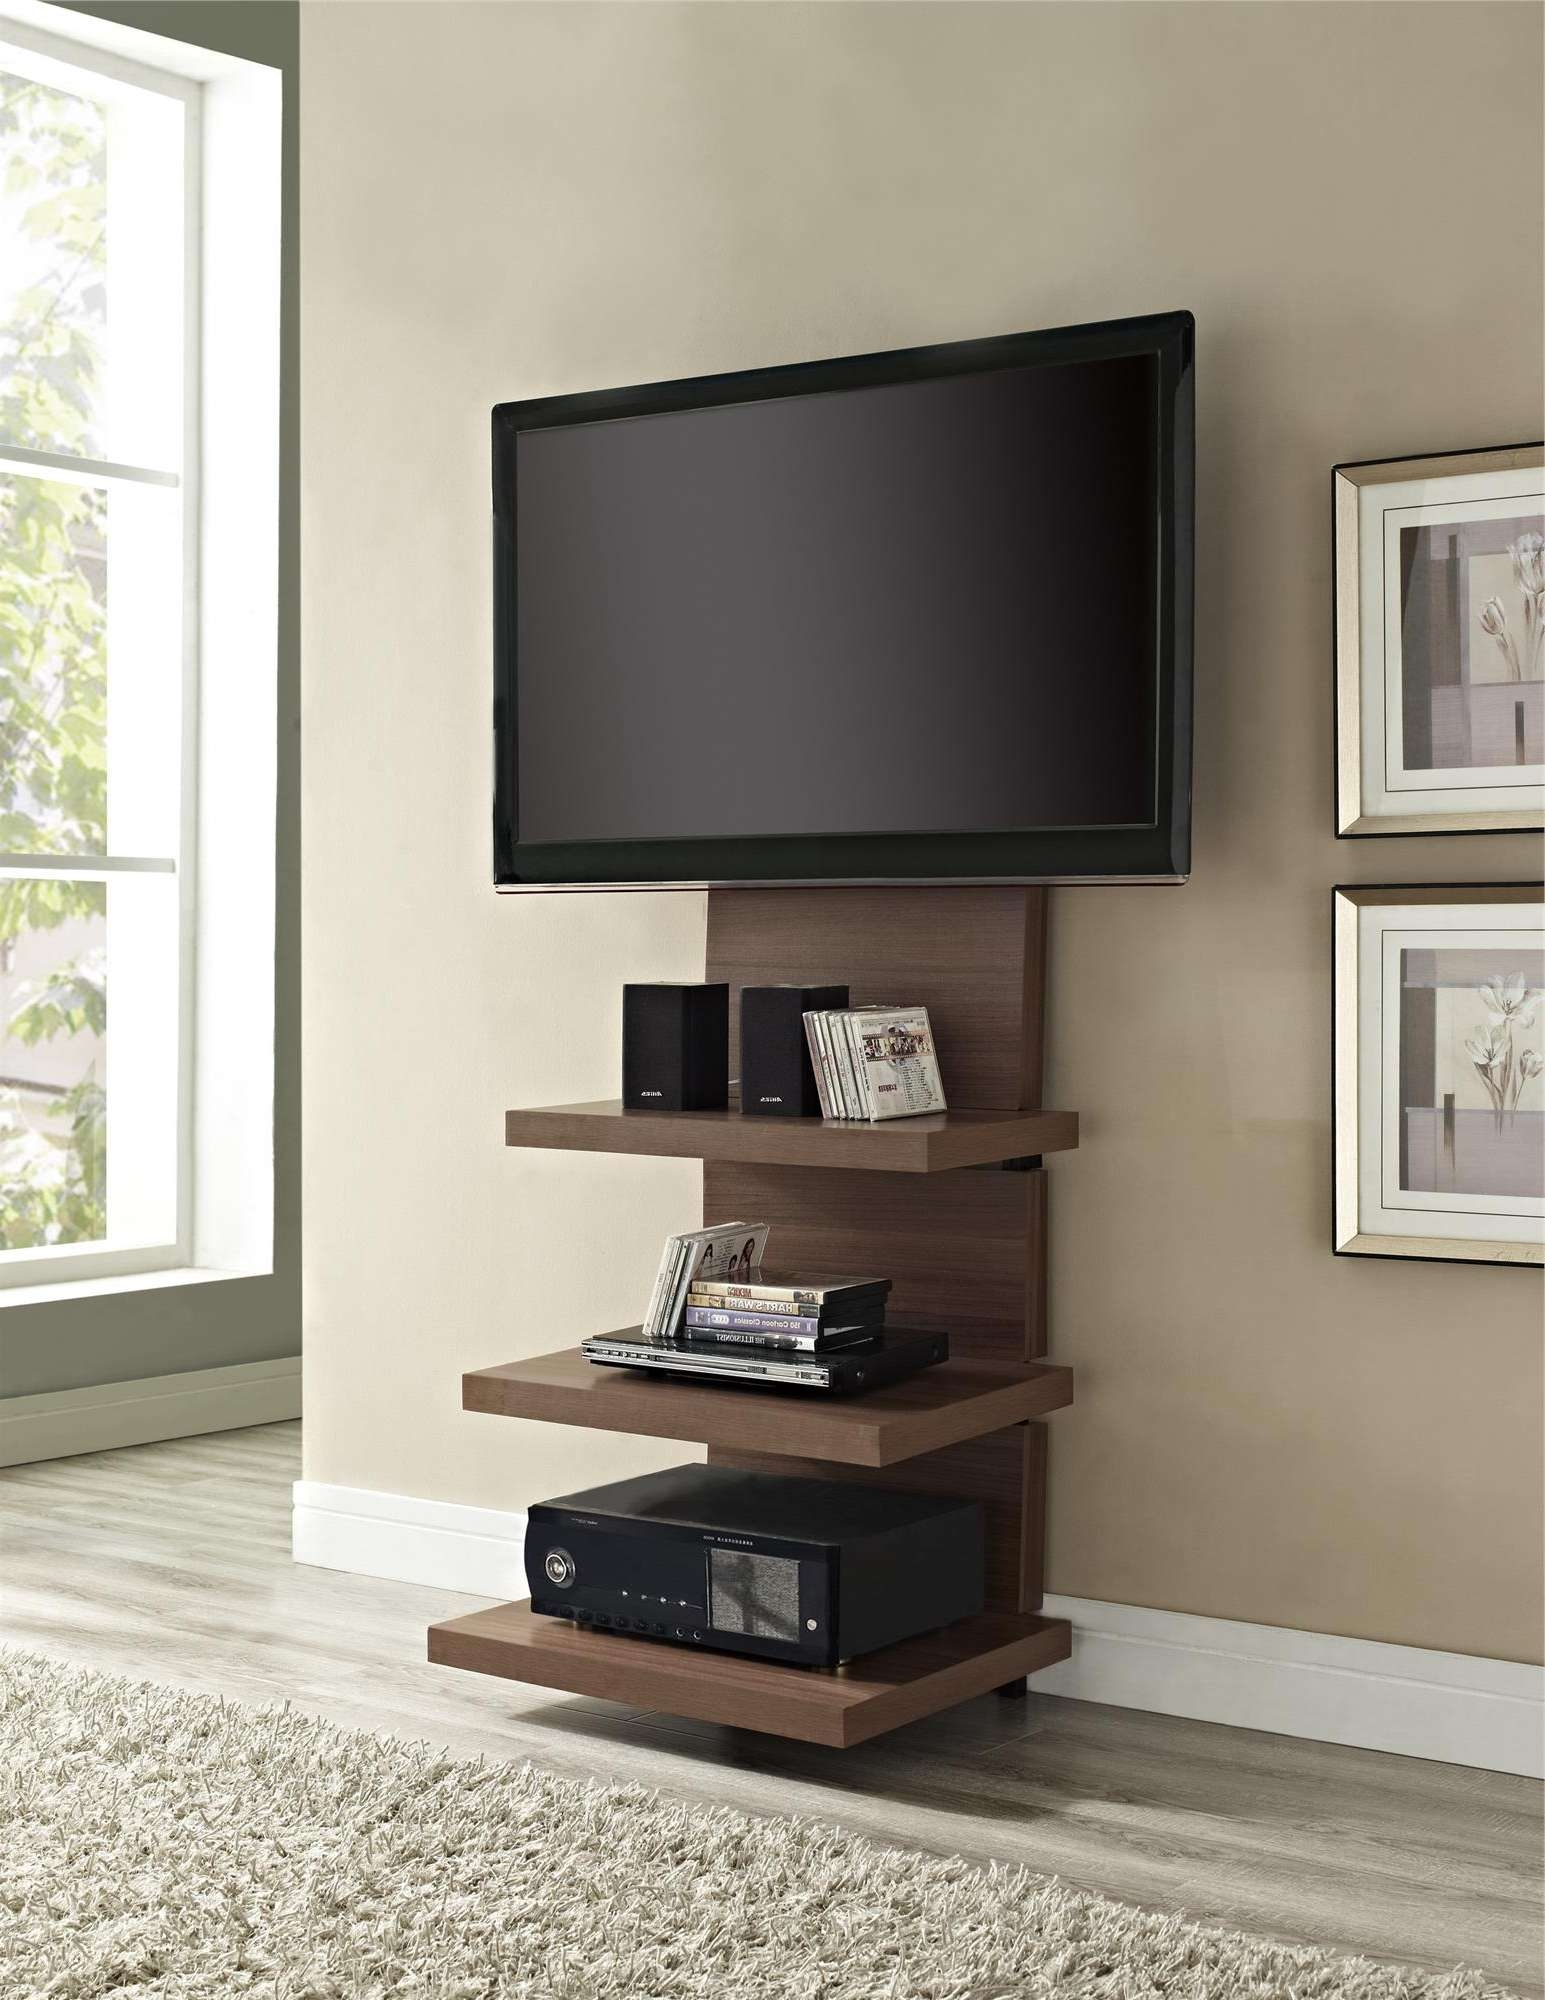 Cool Custom Modern Vertical Wood Tv Stands With Floating Display With Floating Glass Tv Stands (View 2 of 15)